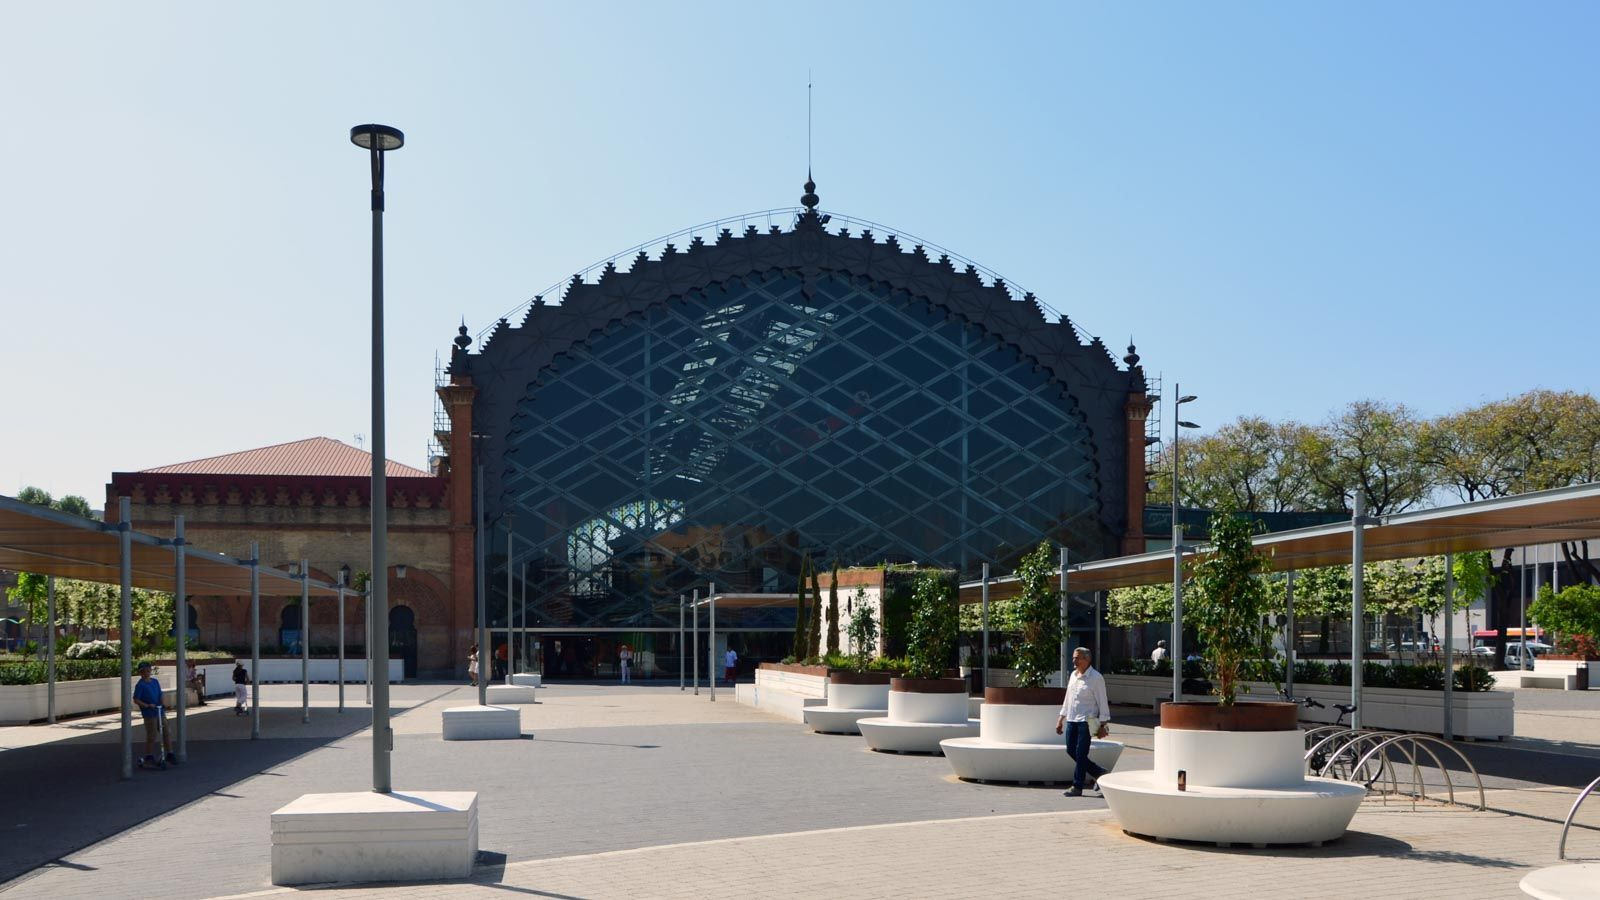 seville plaza de armas shopping mall